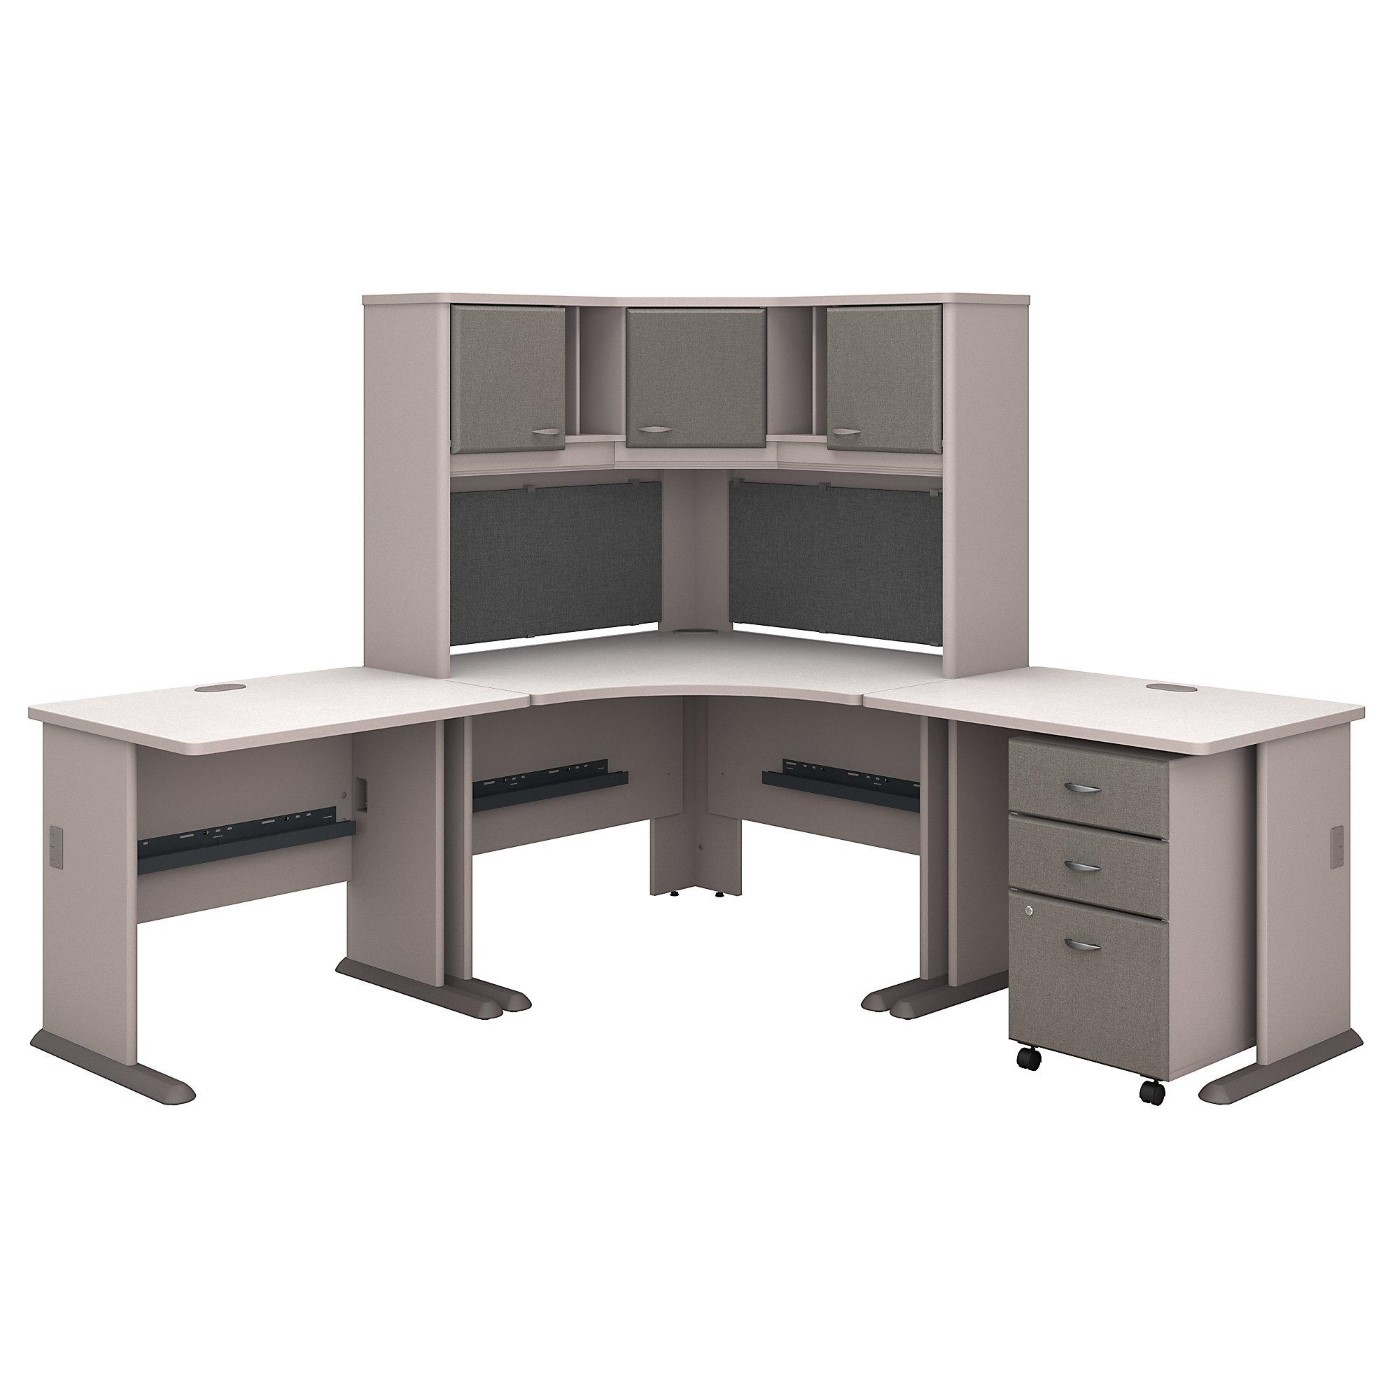 <font color=#c60><b>BUSH BUSINESS FURNITURE SERIES A 84W X 84D CORNER DESK WITH HUTCH AND MOBILE FILE CABINET. FREE SHIPPING</font></b></font>